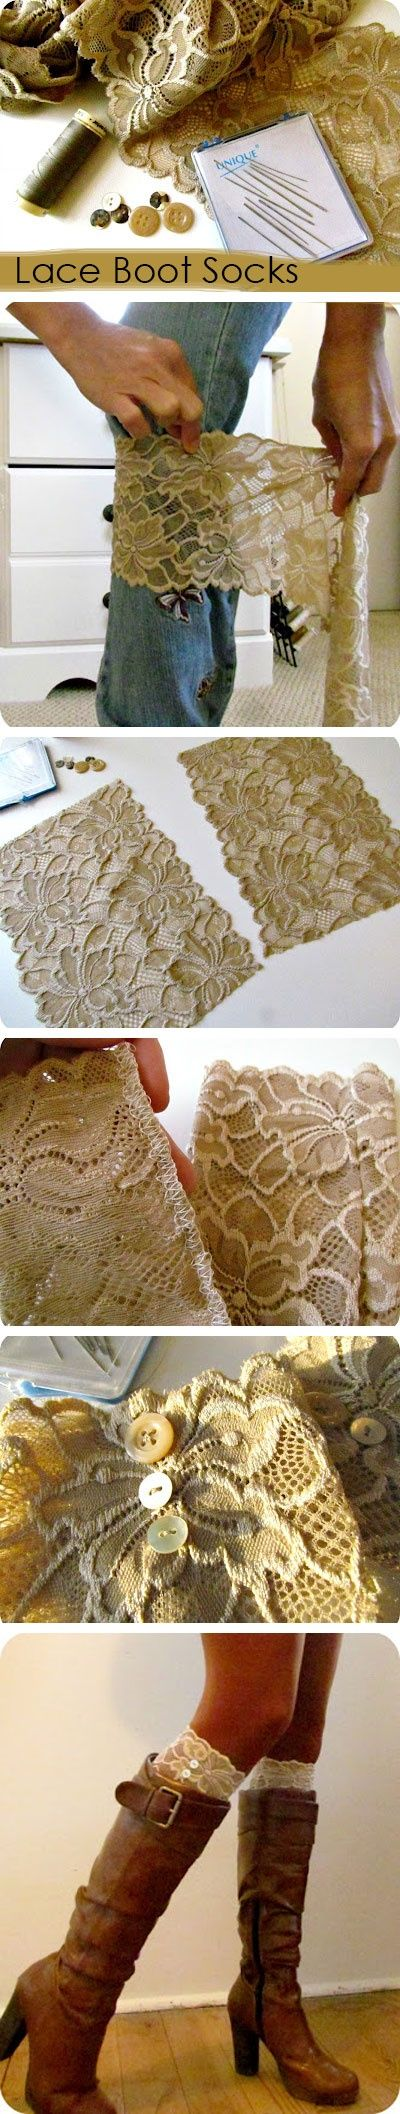 Lace boot socks...want to make some of these!: